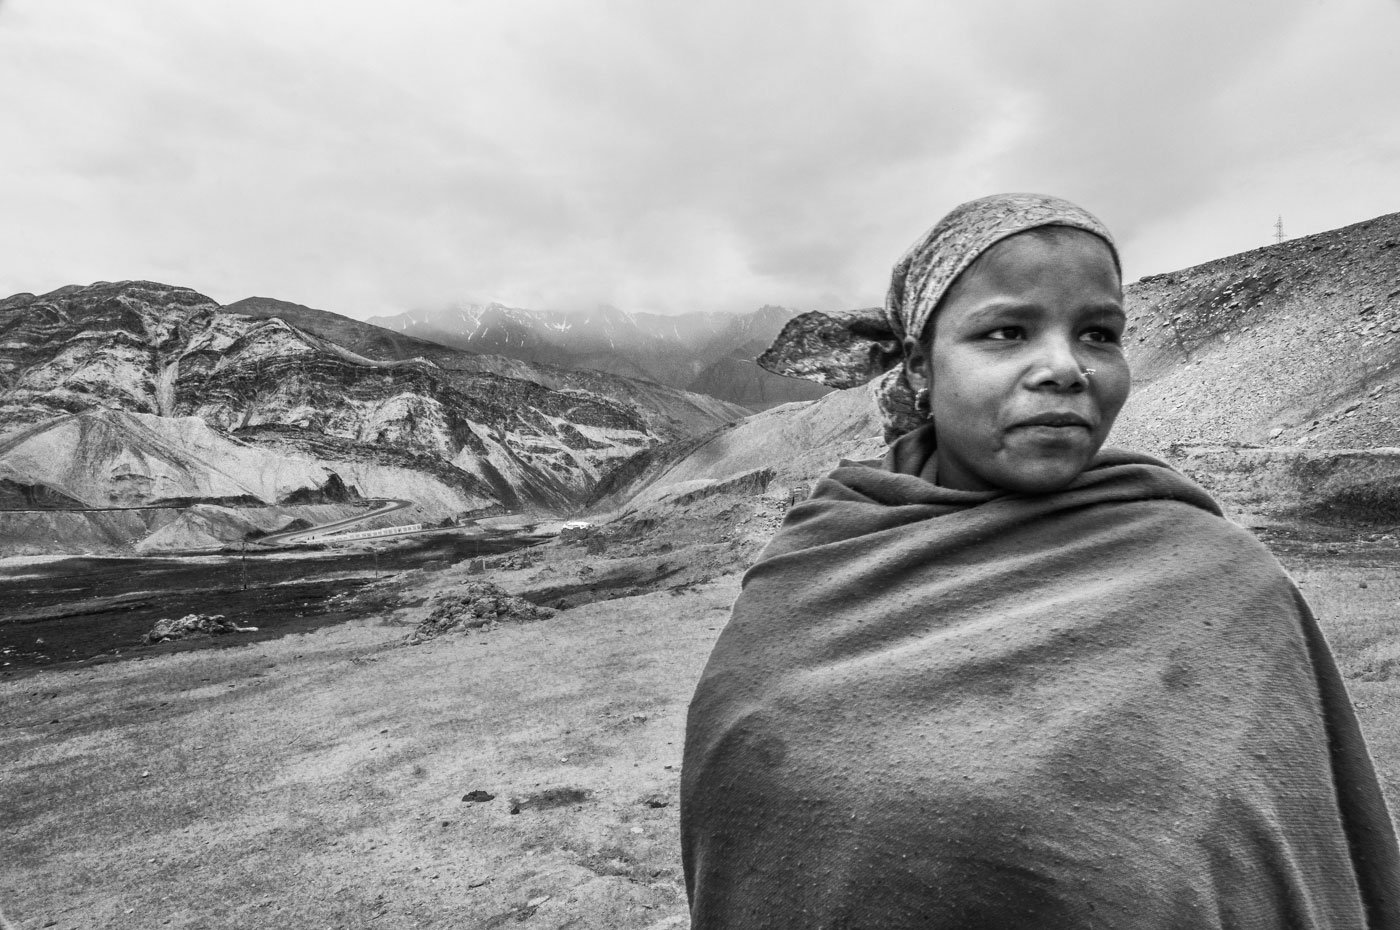 Sandhya Rani Murmu is from Jharkhand, among the few women at the work sites; she has come to visit her brother, she says, and is pitching in with the road building near Durbok village, between the Chang La pass and Tagste. Mud slides are common at Chang La, so there's a constant need for labourers.